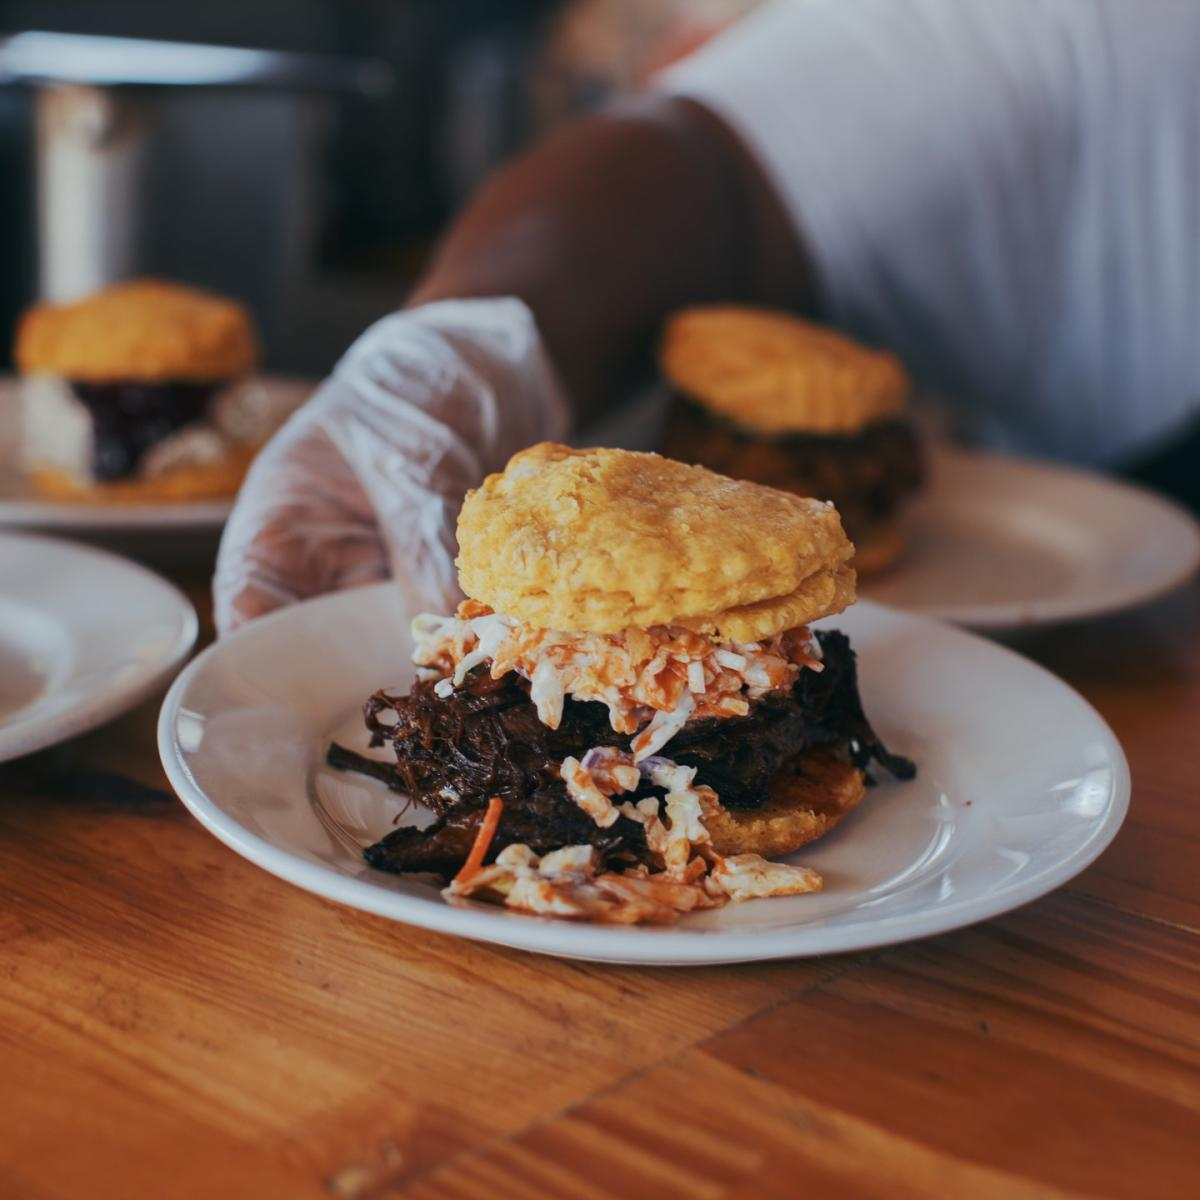 Made with Sweet-potato biscuits, this Handsome Biscuit sandwich is a local favorite.